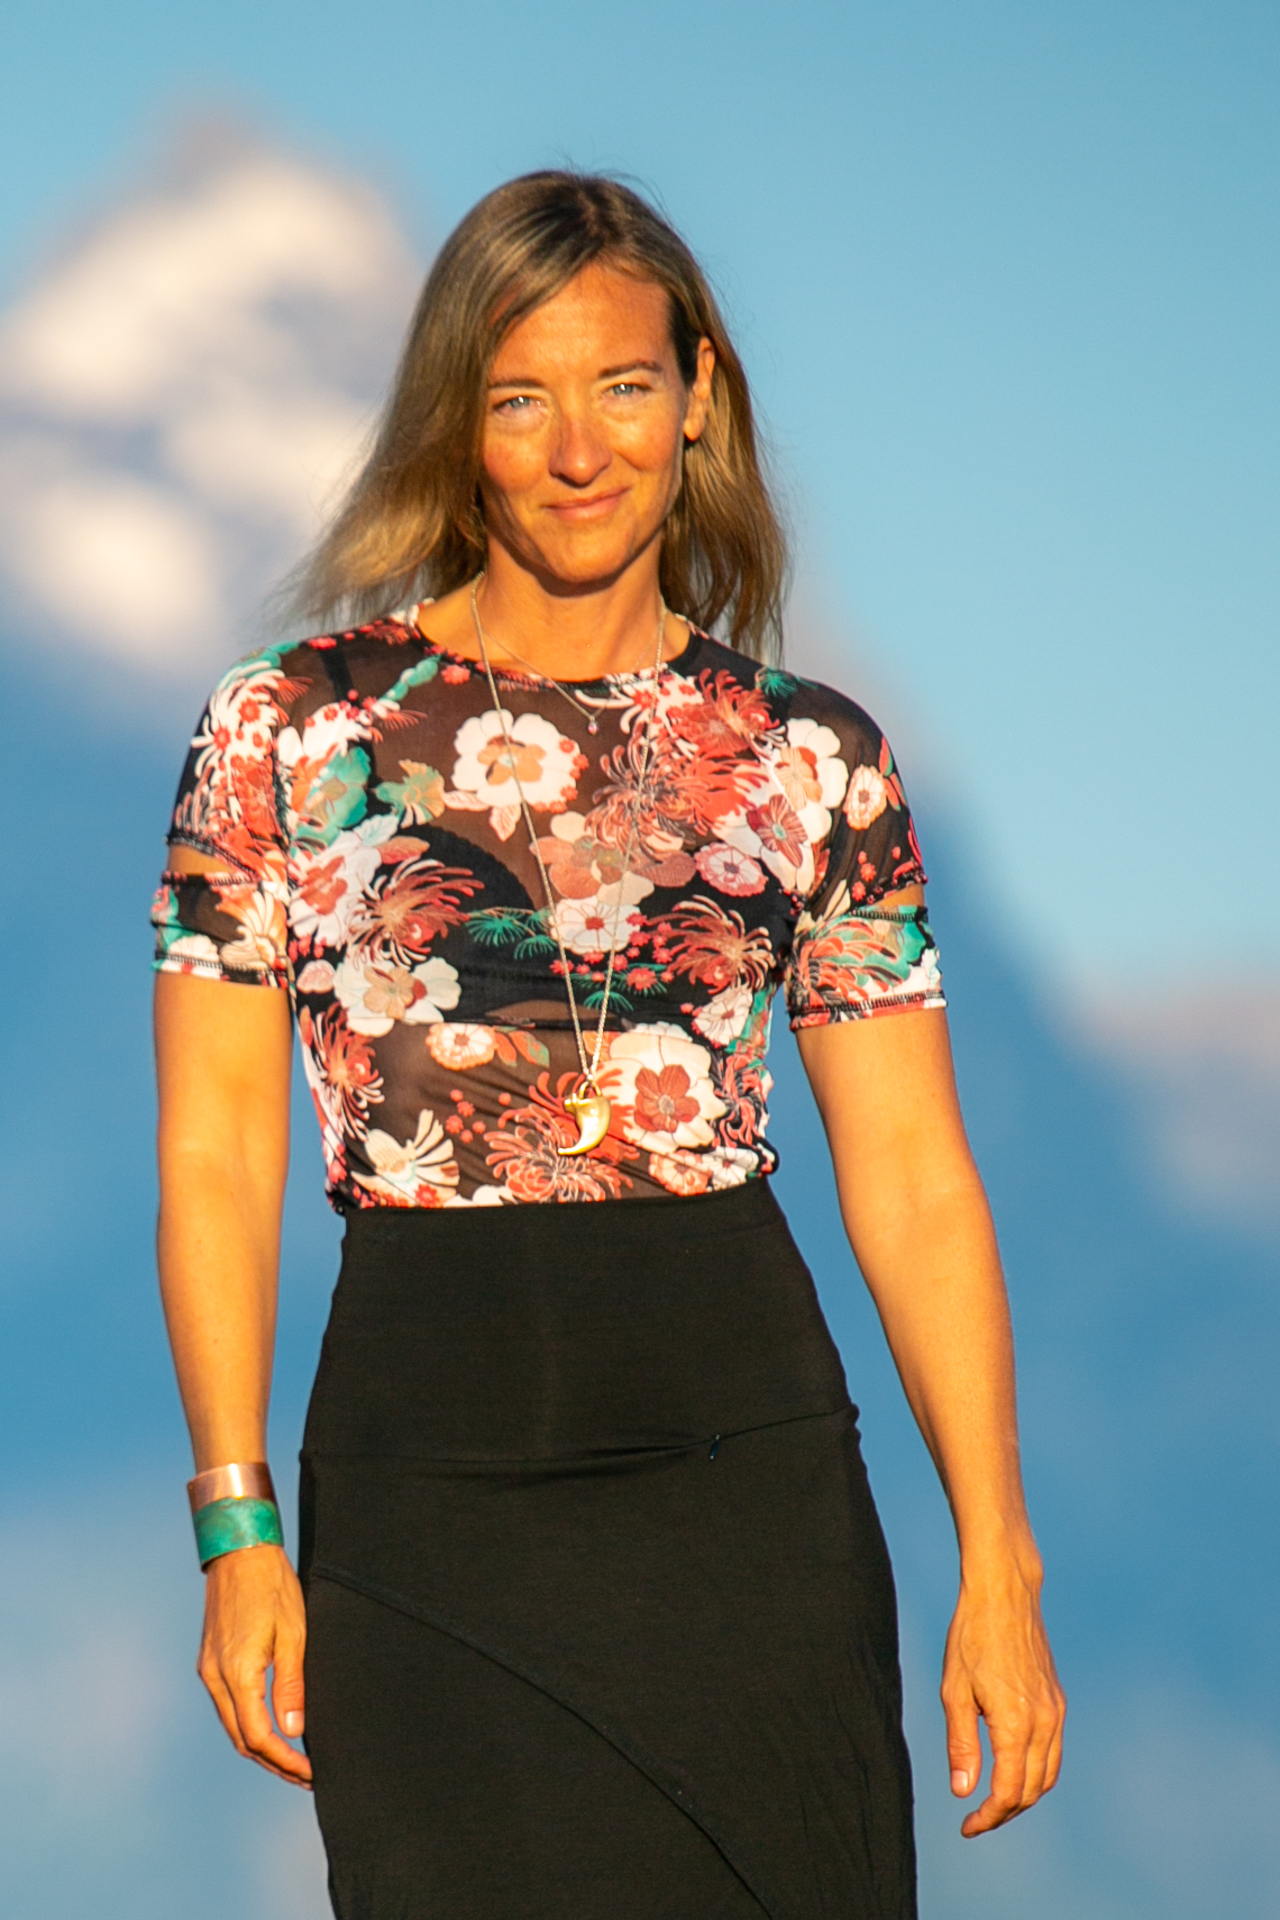 Fashion designer Autumn Teneyl wearing her newest designed short sleeved top in the Teton Mountains in Wyoming.